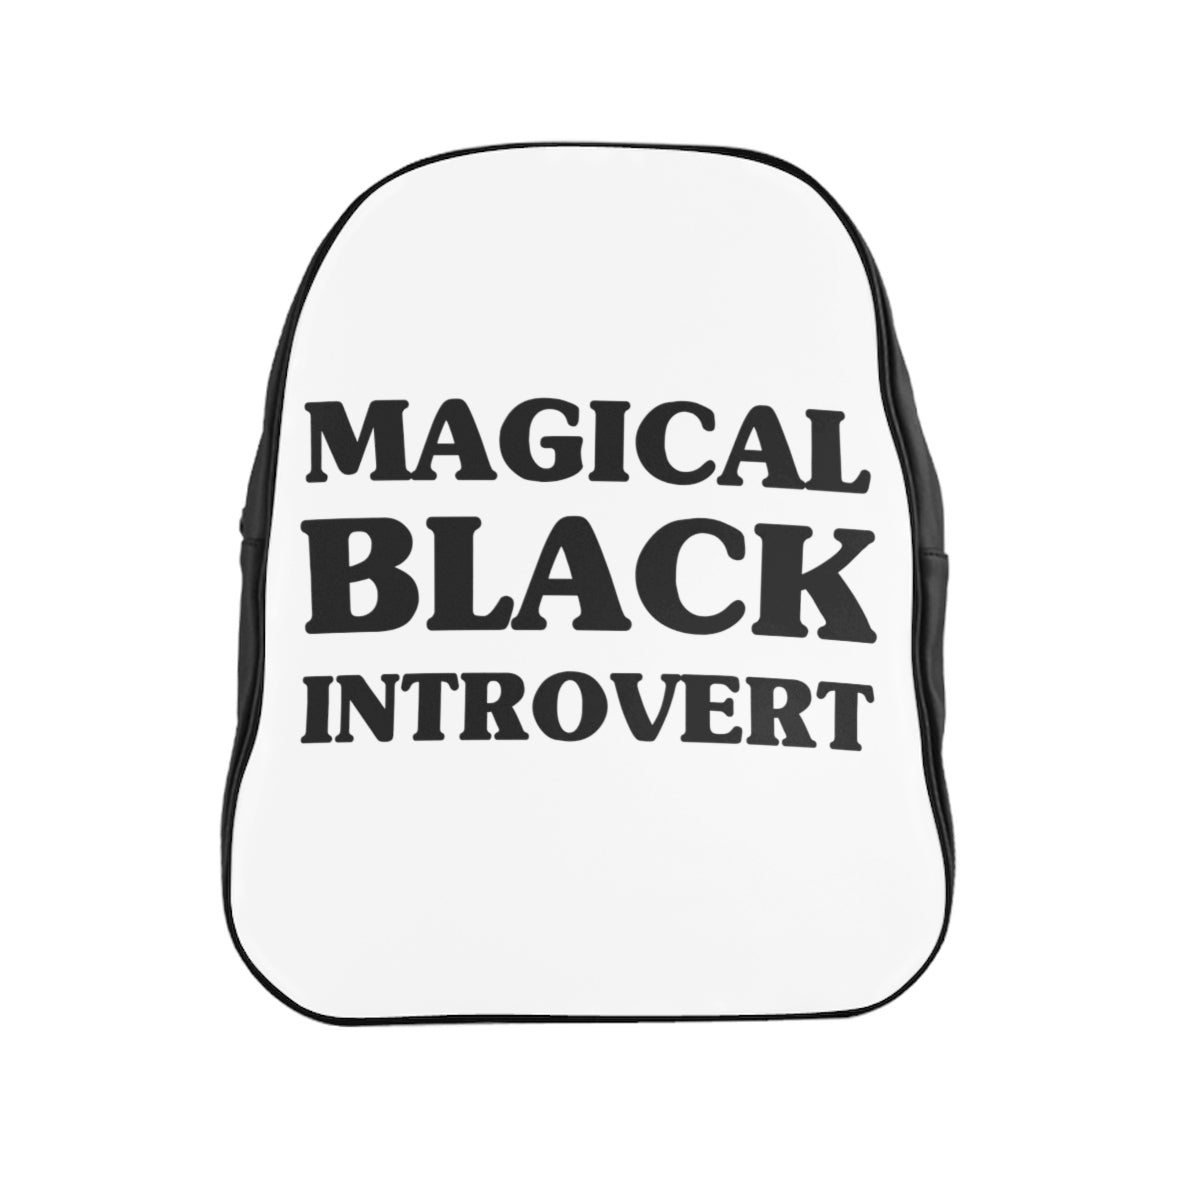 Magical Black Introvert School Backpack